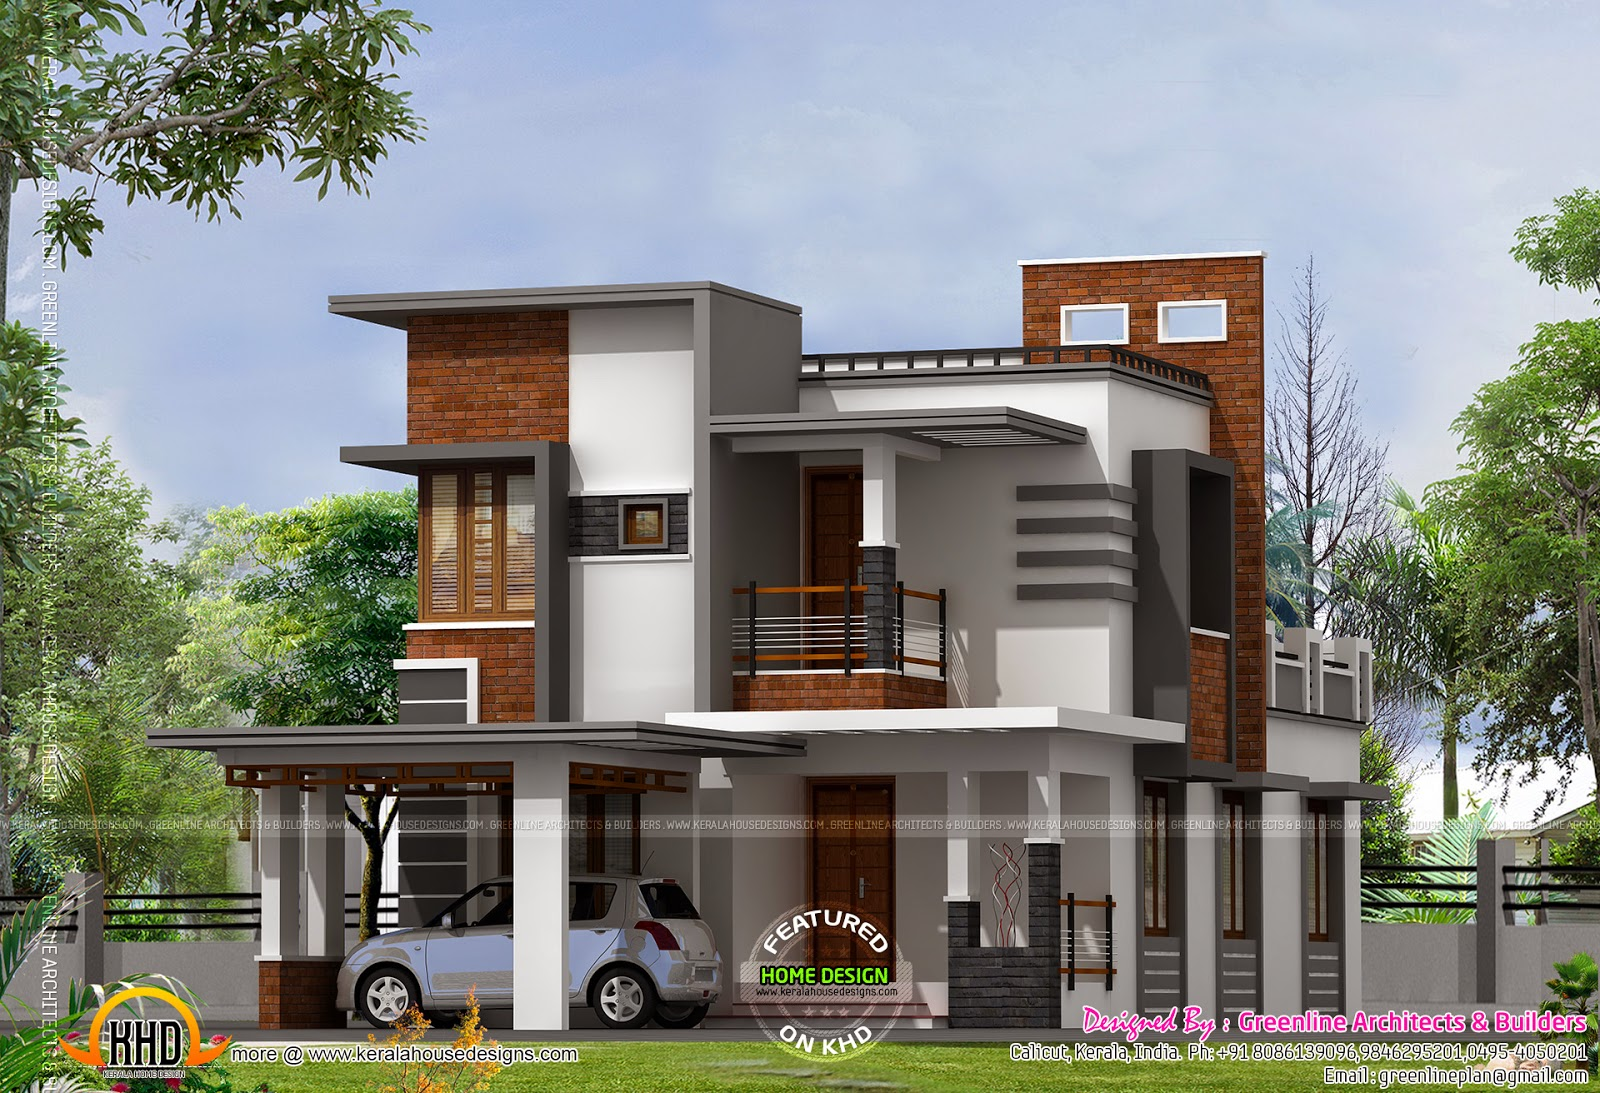 Low cost contemporary house kerala home design and floor for Low building cost house plans